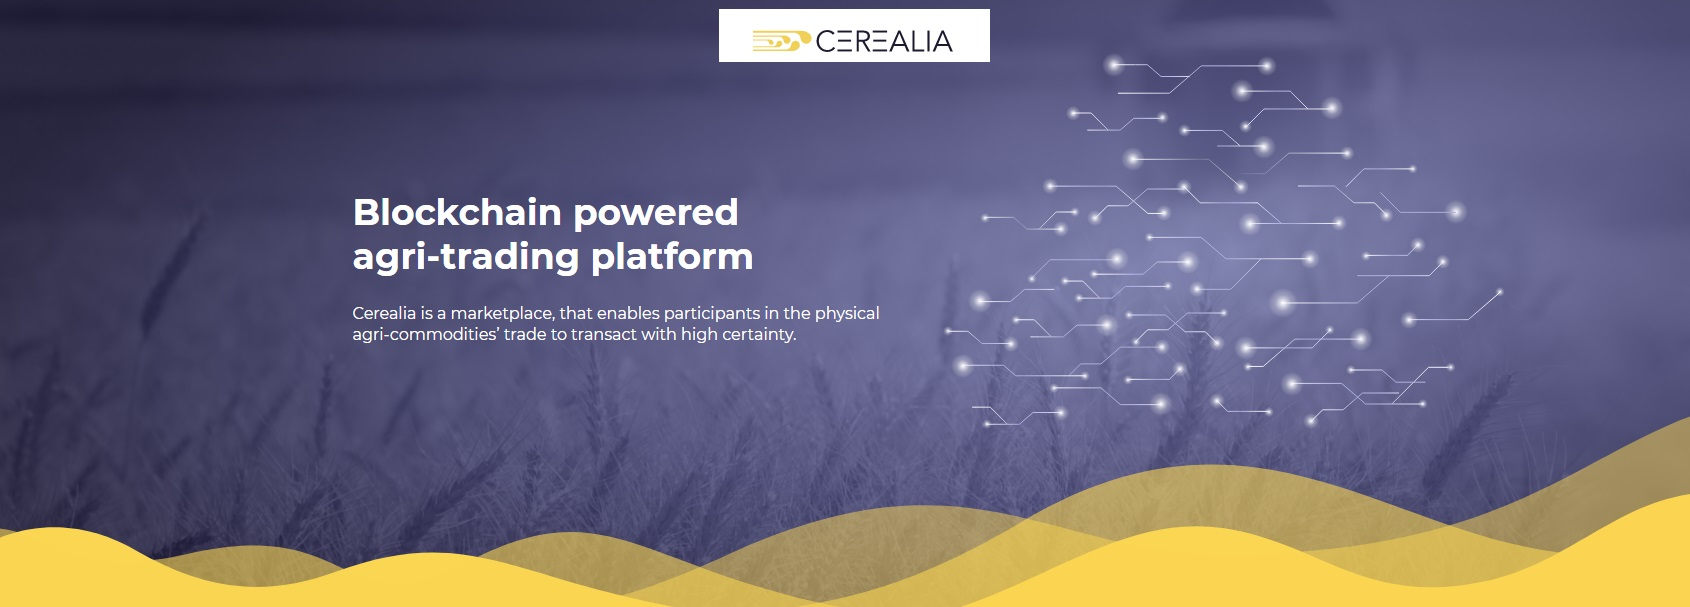 Cerealia updated